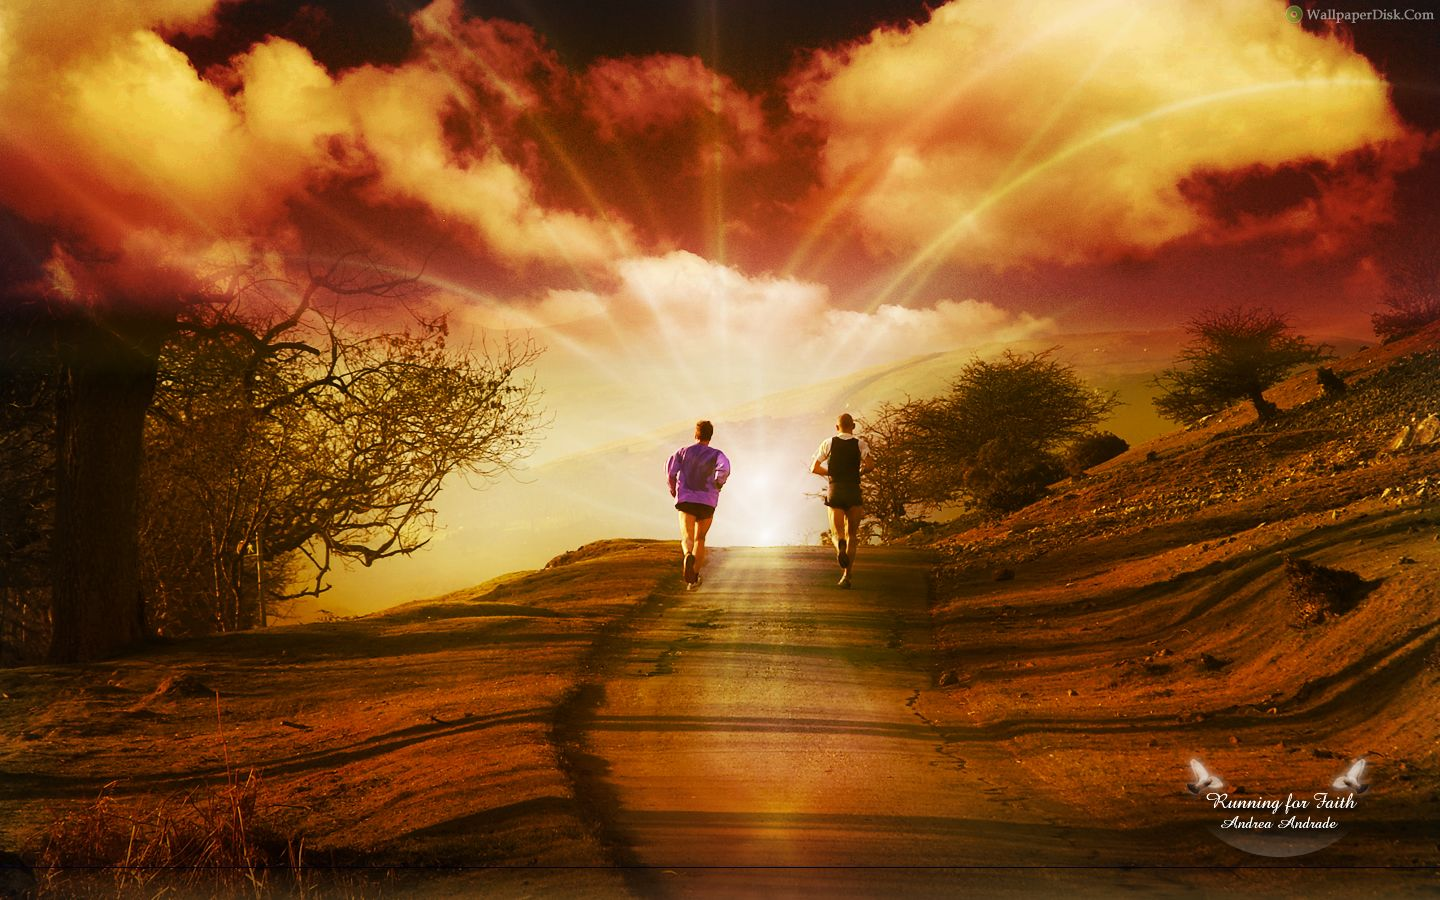 Best Running for faith desktop wallpapers background collection 1440x900